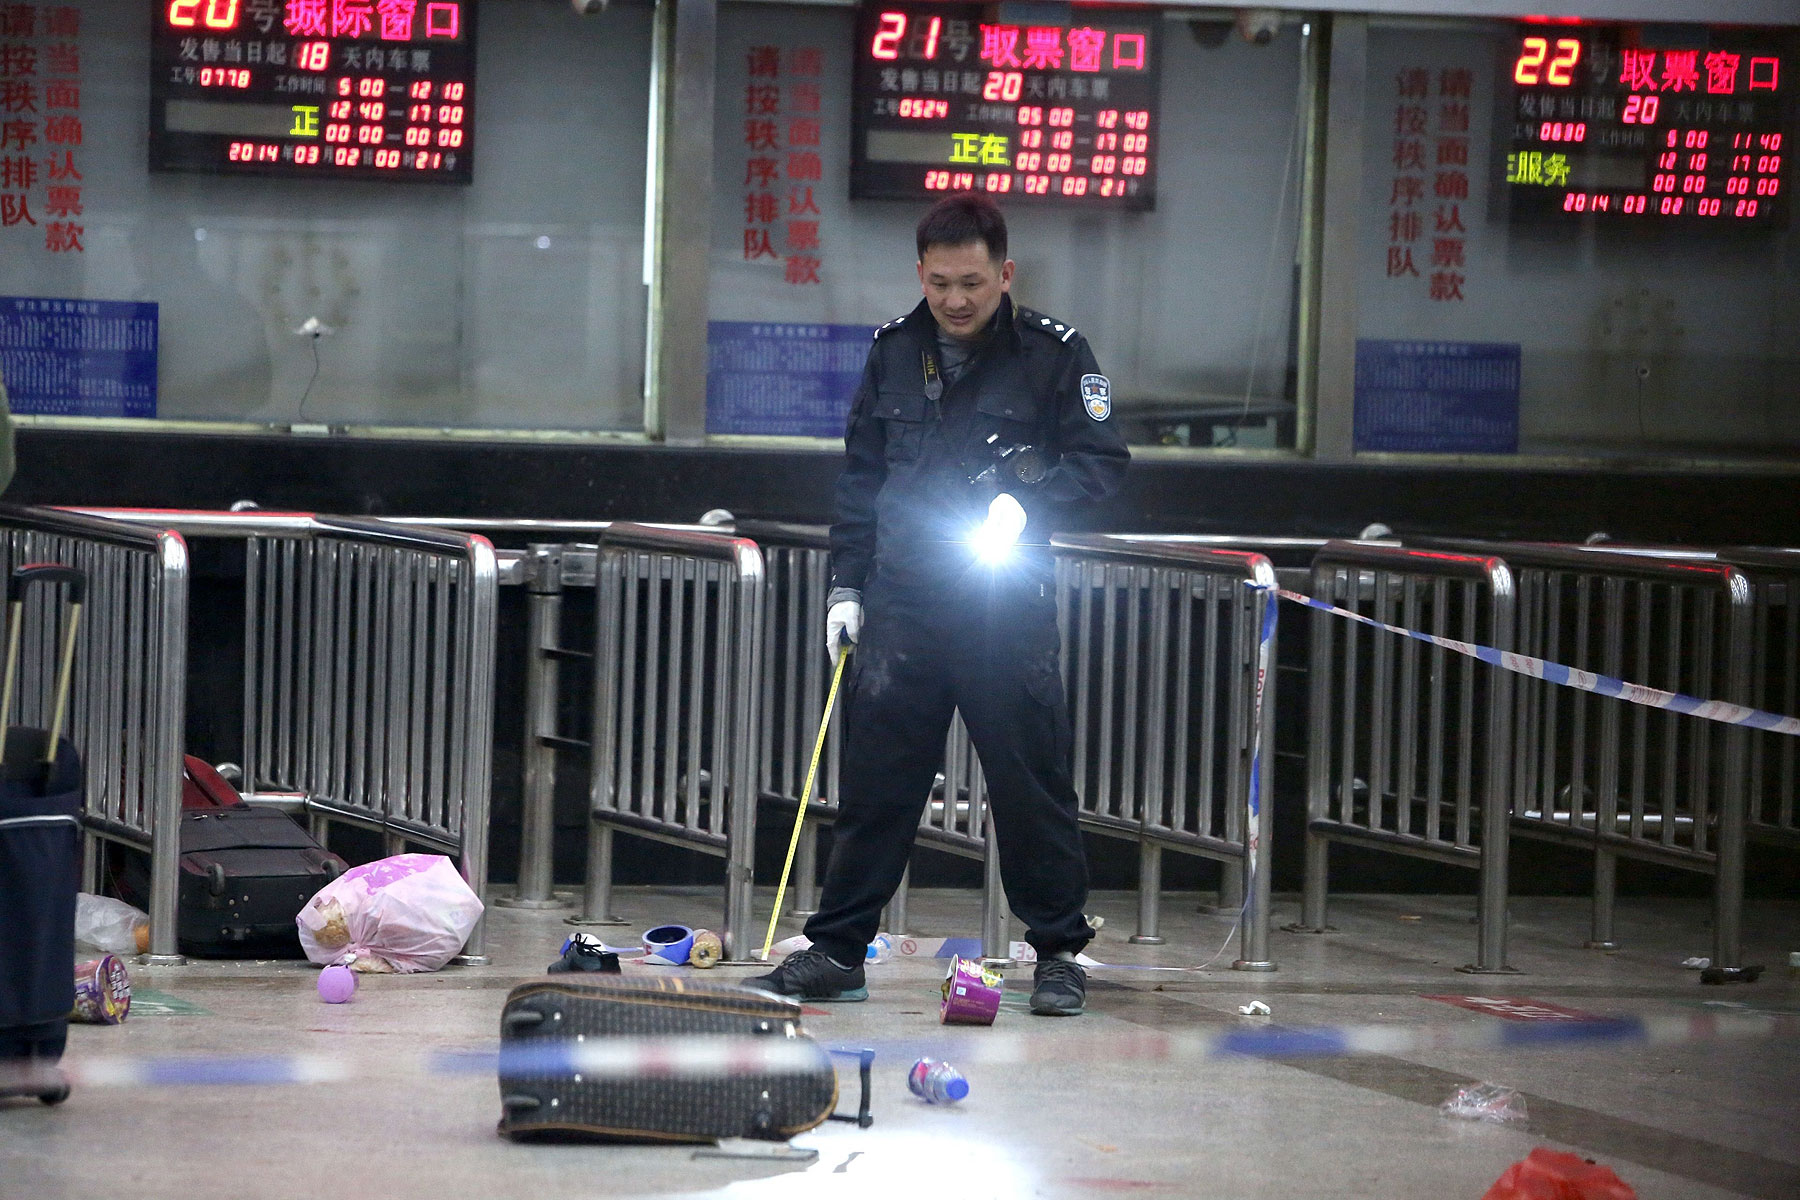 A Chinese police investigator in Kunming's railway station after the March 1 mass knifings that killed 29 people and injured scores